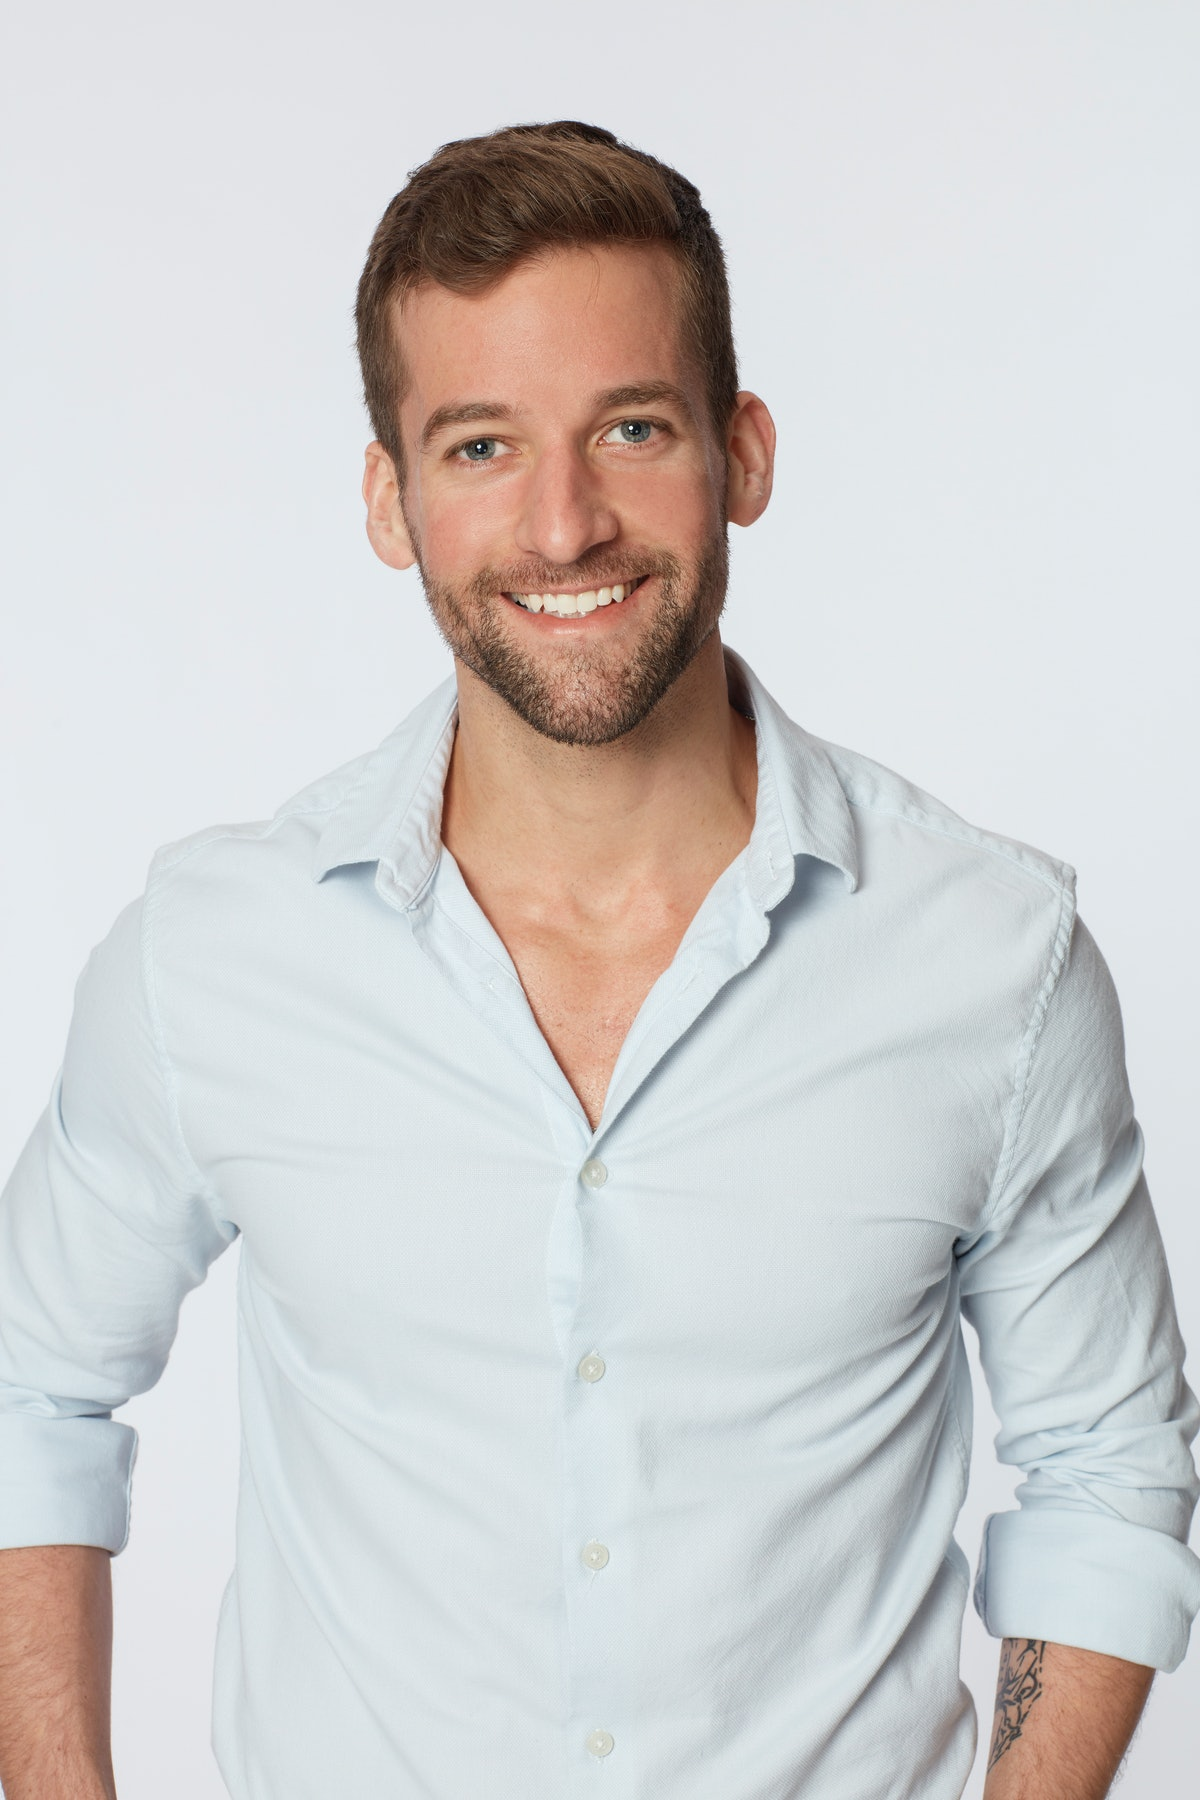 Connor Brennan is a contestant on Season 17 of 'The Bachelorette'